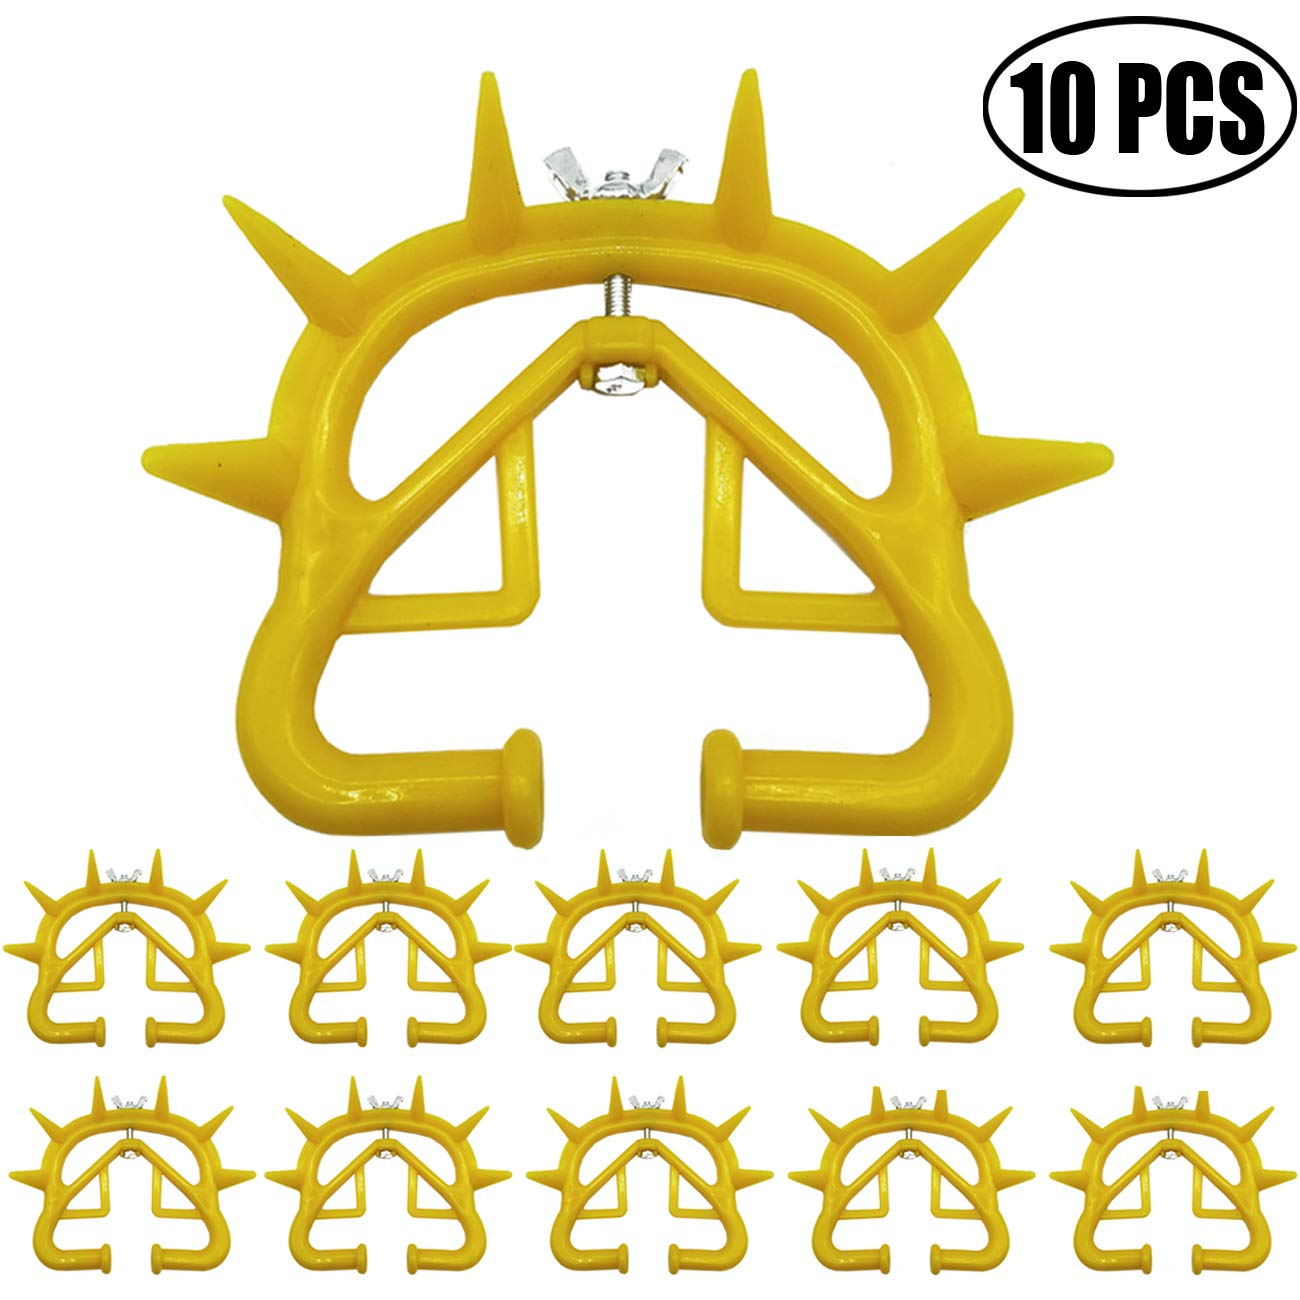 TIHOOD 10PCS Plastic Calf Cow Cattle Nose Ring Weaning Weaner Anti Sucking Milking Stop Farm Products Yellow by TIHOOD